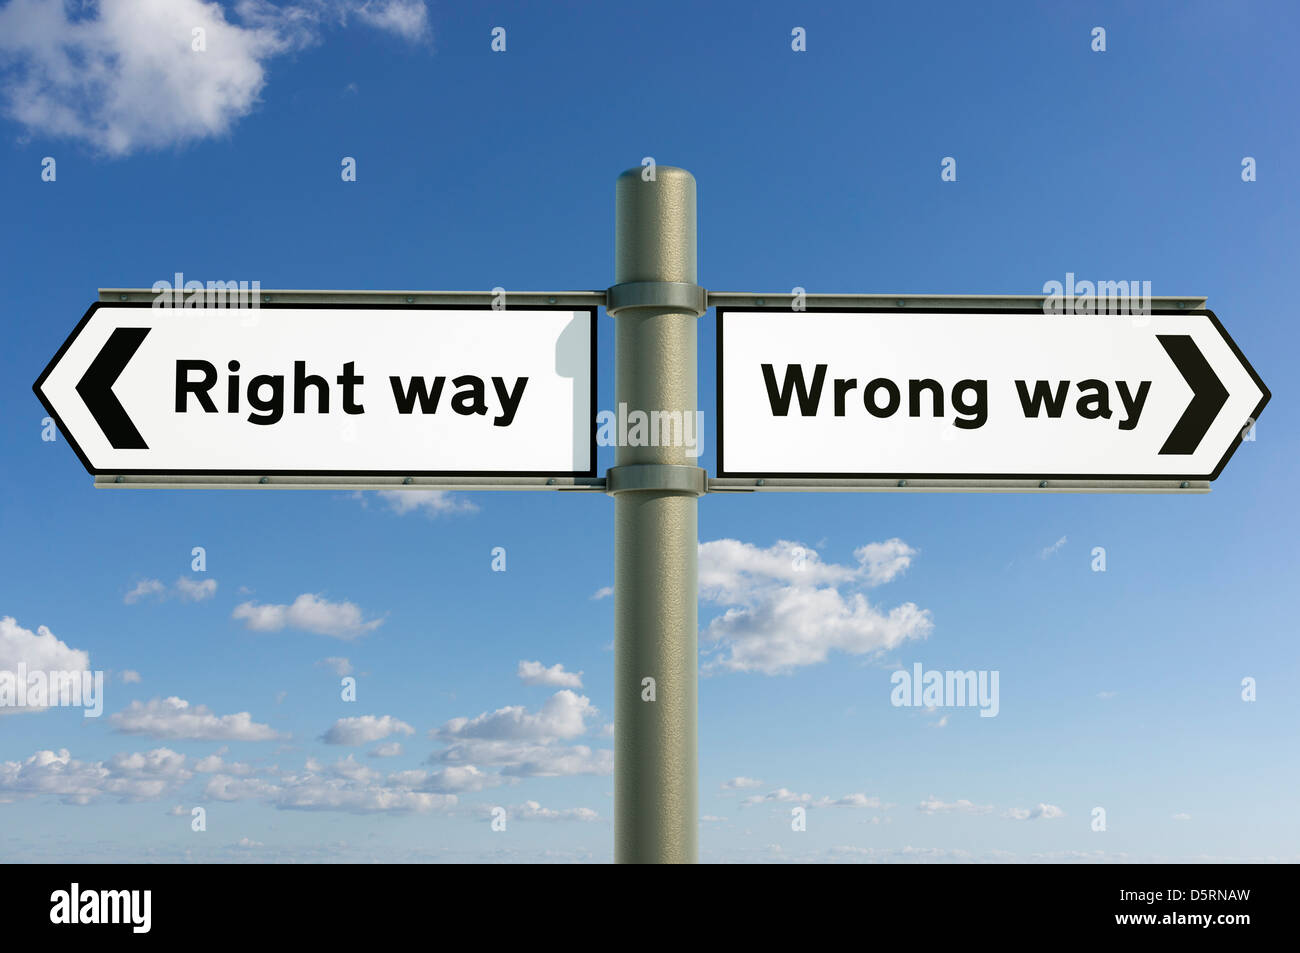 Right way, Wrong way choices and directions future concept sign - Stock Image